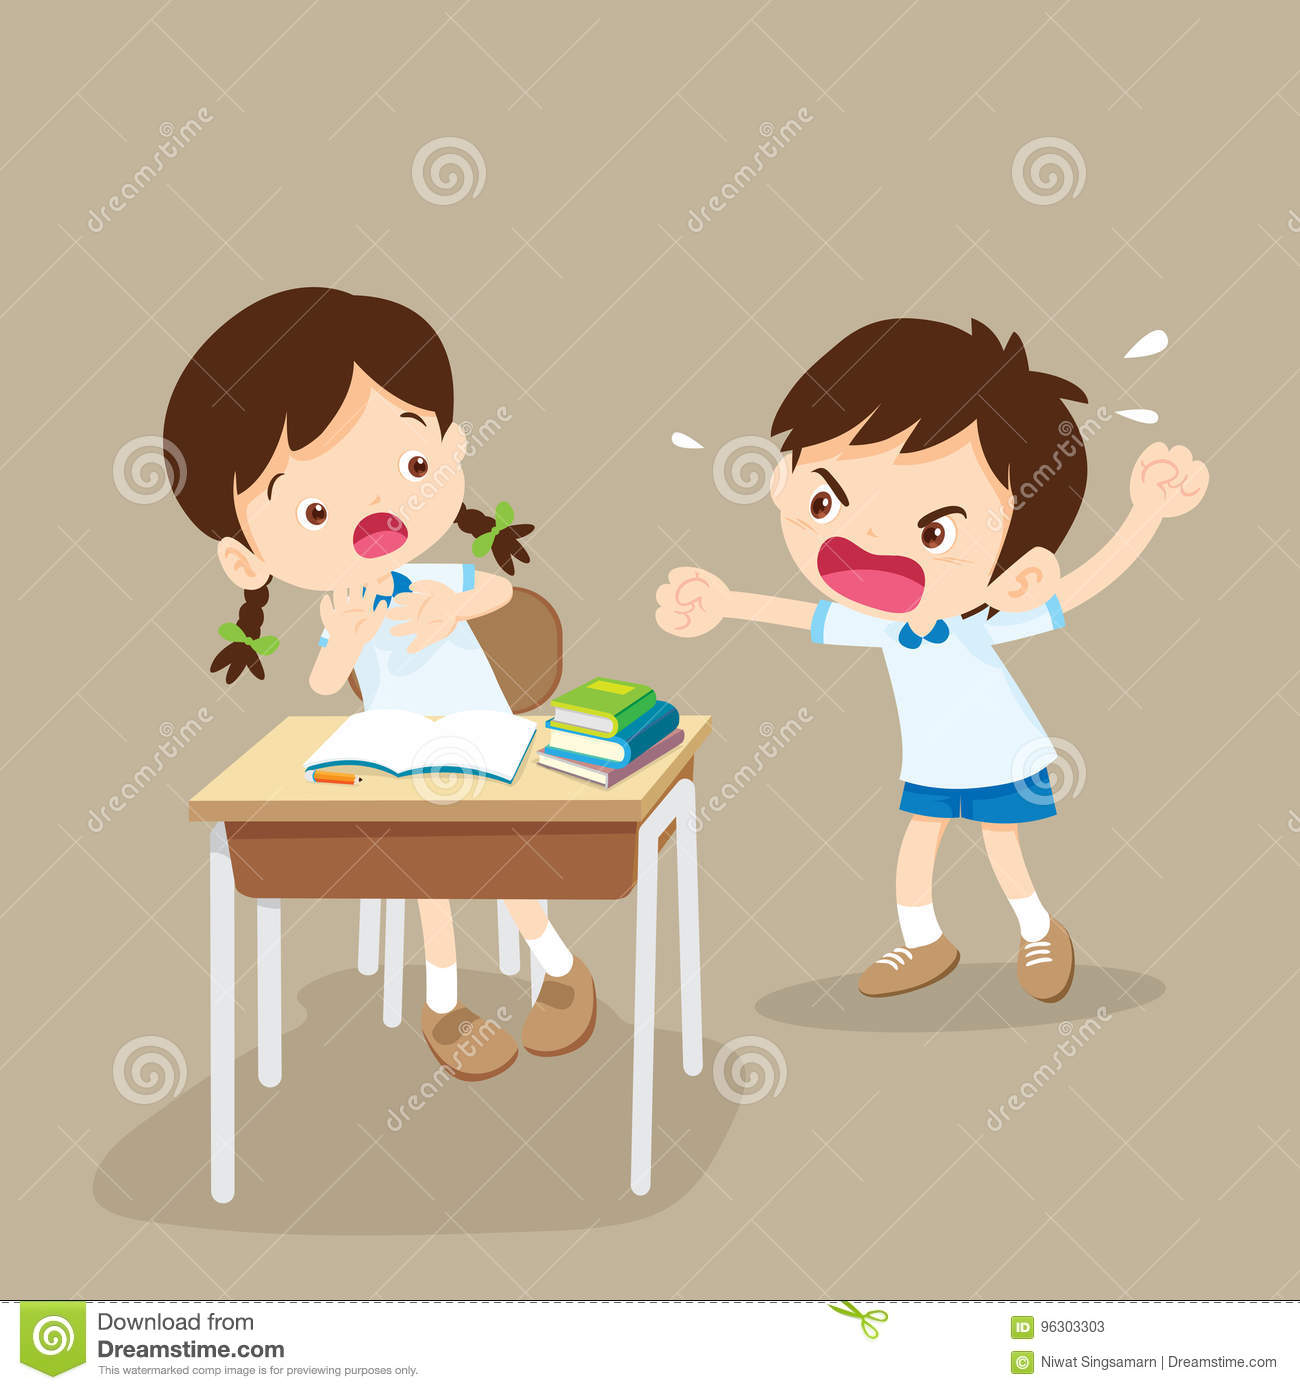 Angry Boy Shouting At Friend Stock Vector - Illustration ...